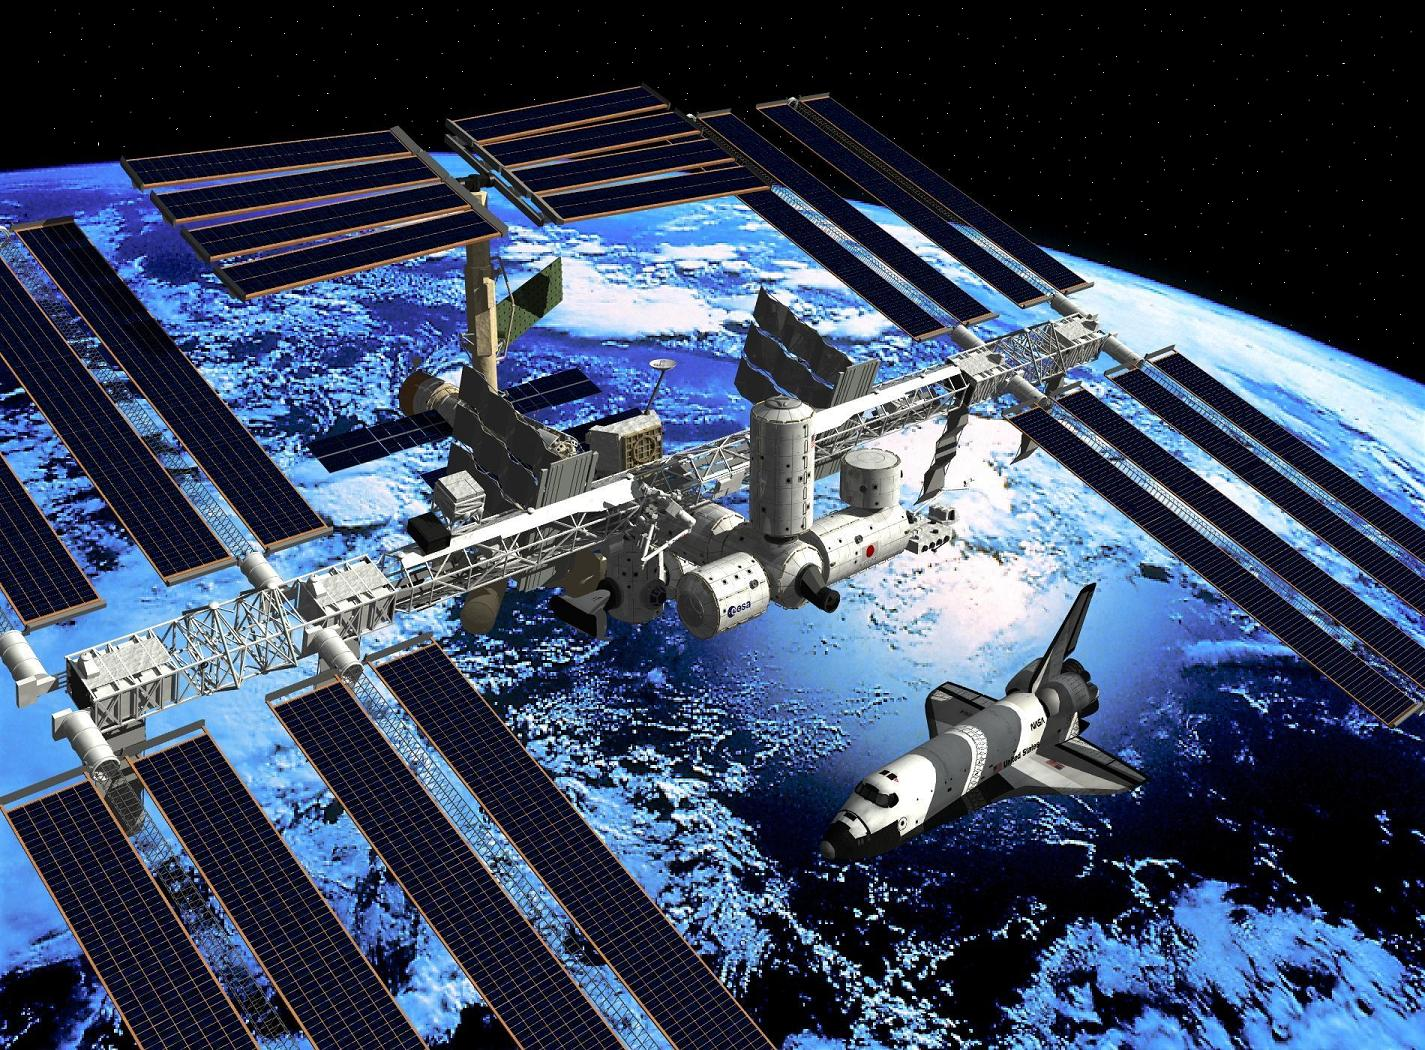 Iss Space Station Location, Iss, Free Engine Image For ...